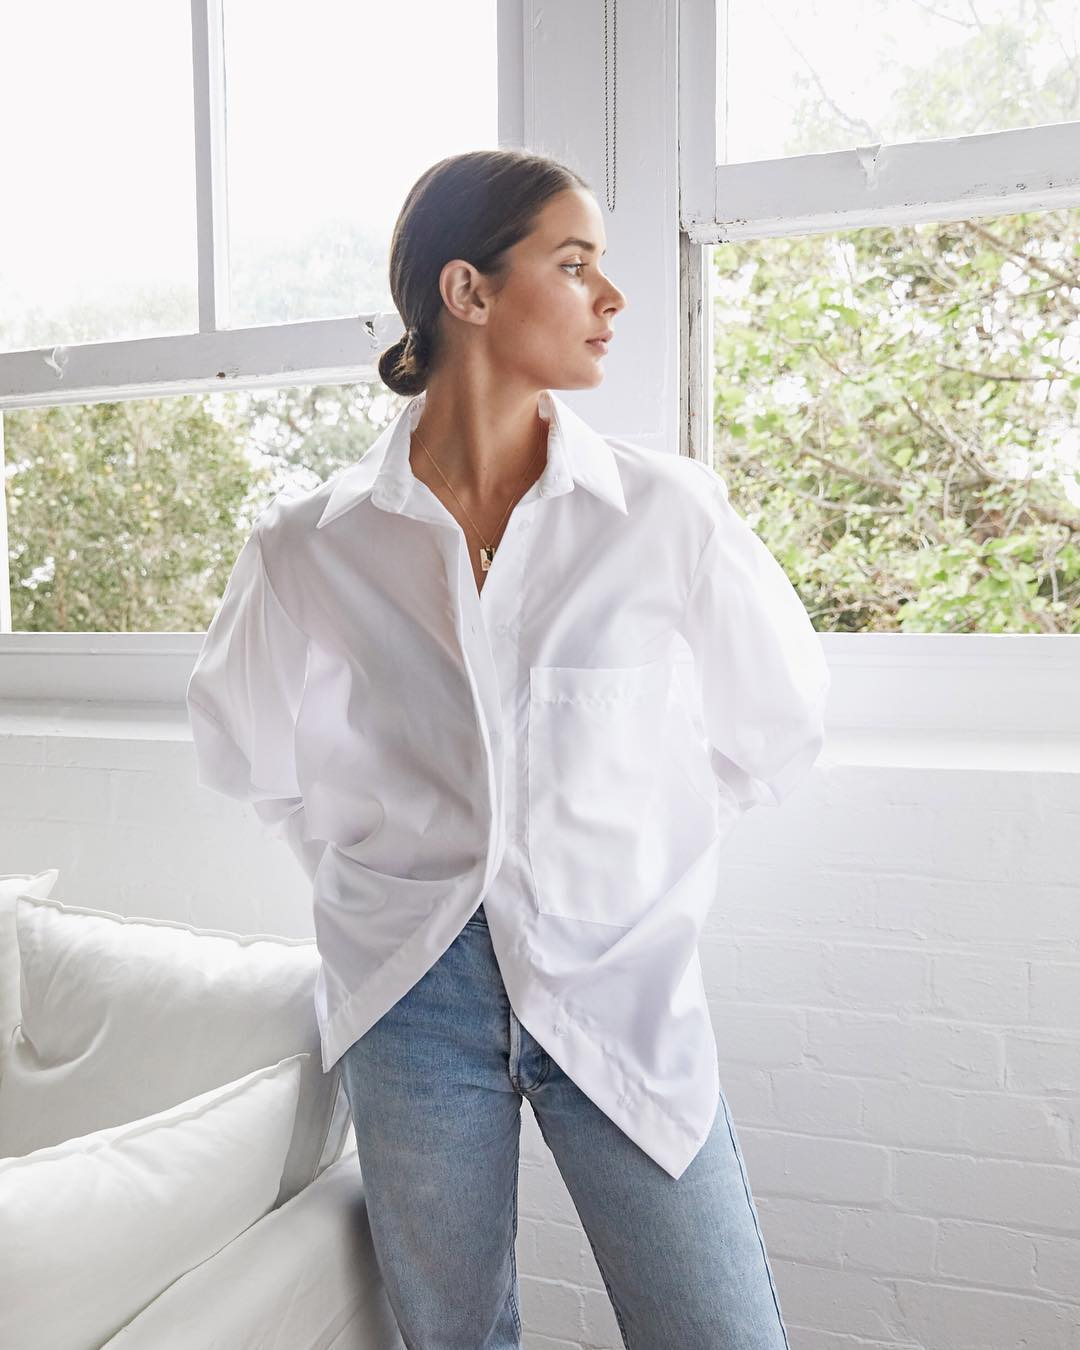 15 Crisp White Button-Down Shirts You Can Wear Year-Round — Harper & Harley with a low bun, white top, and jeans